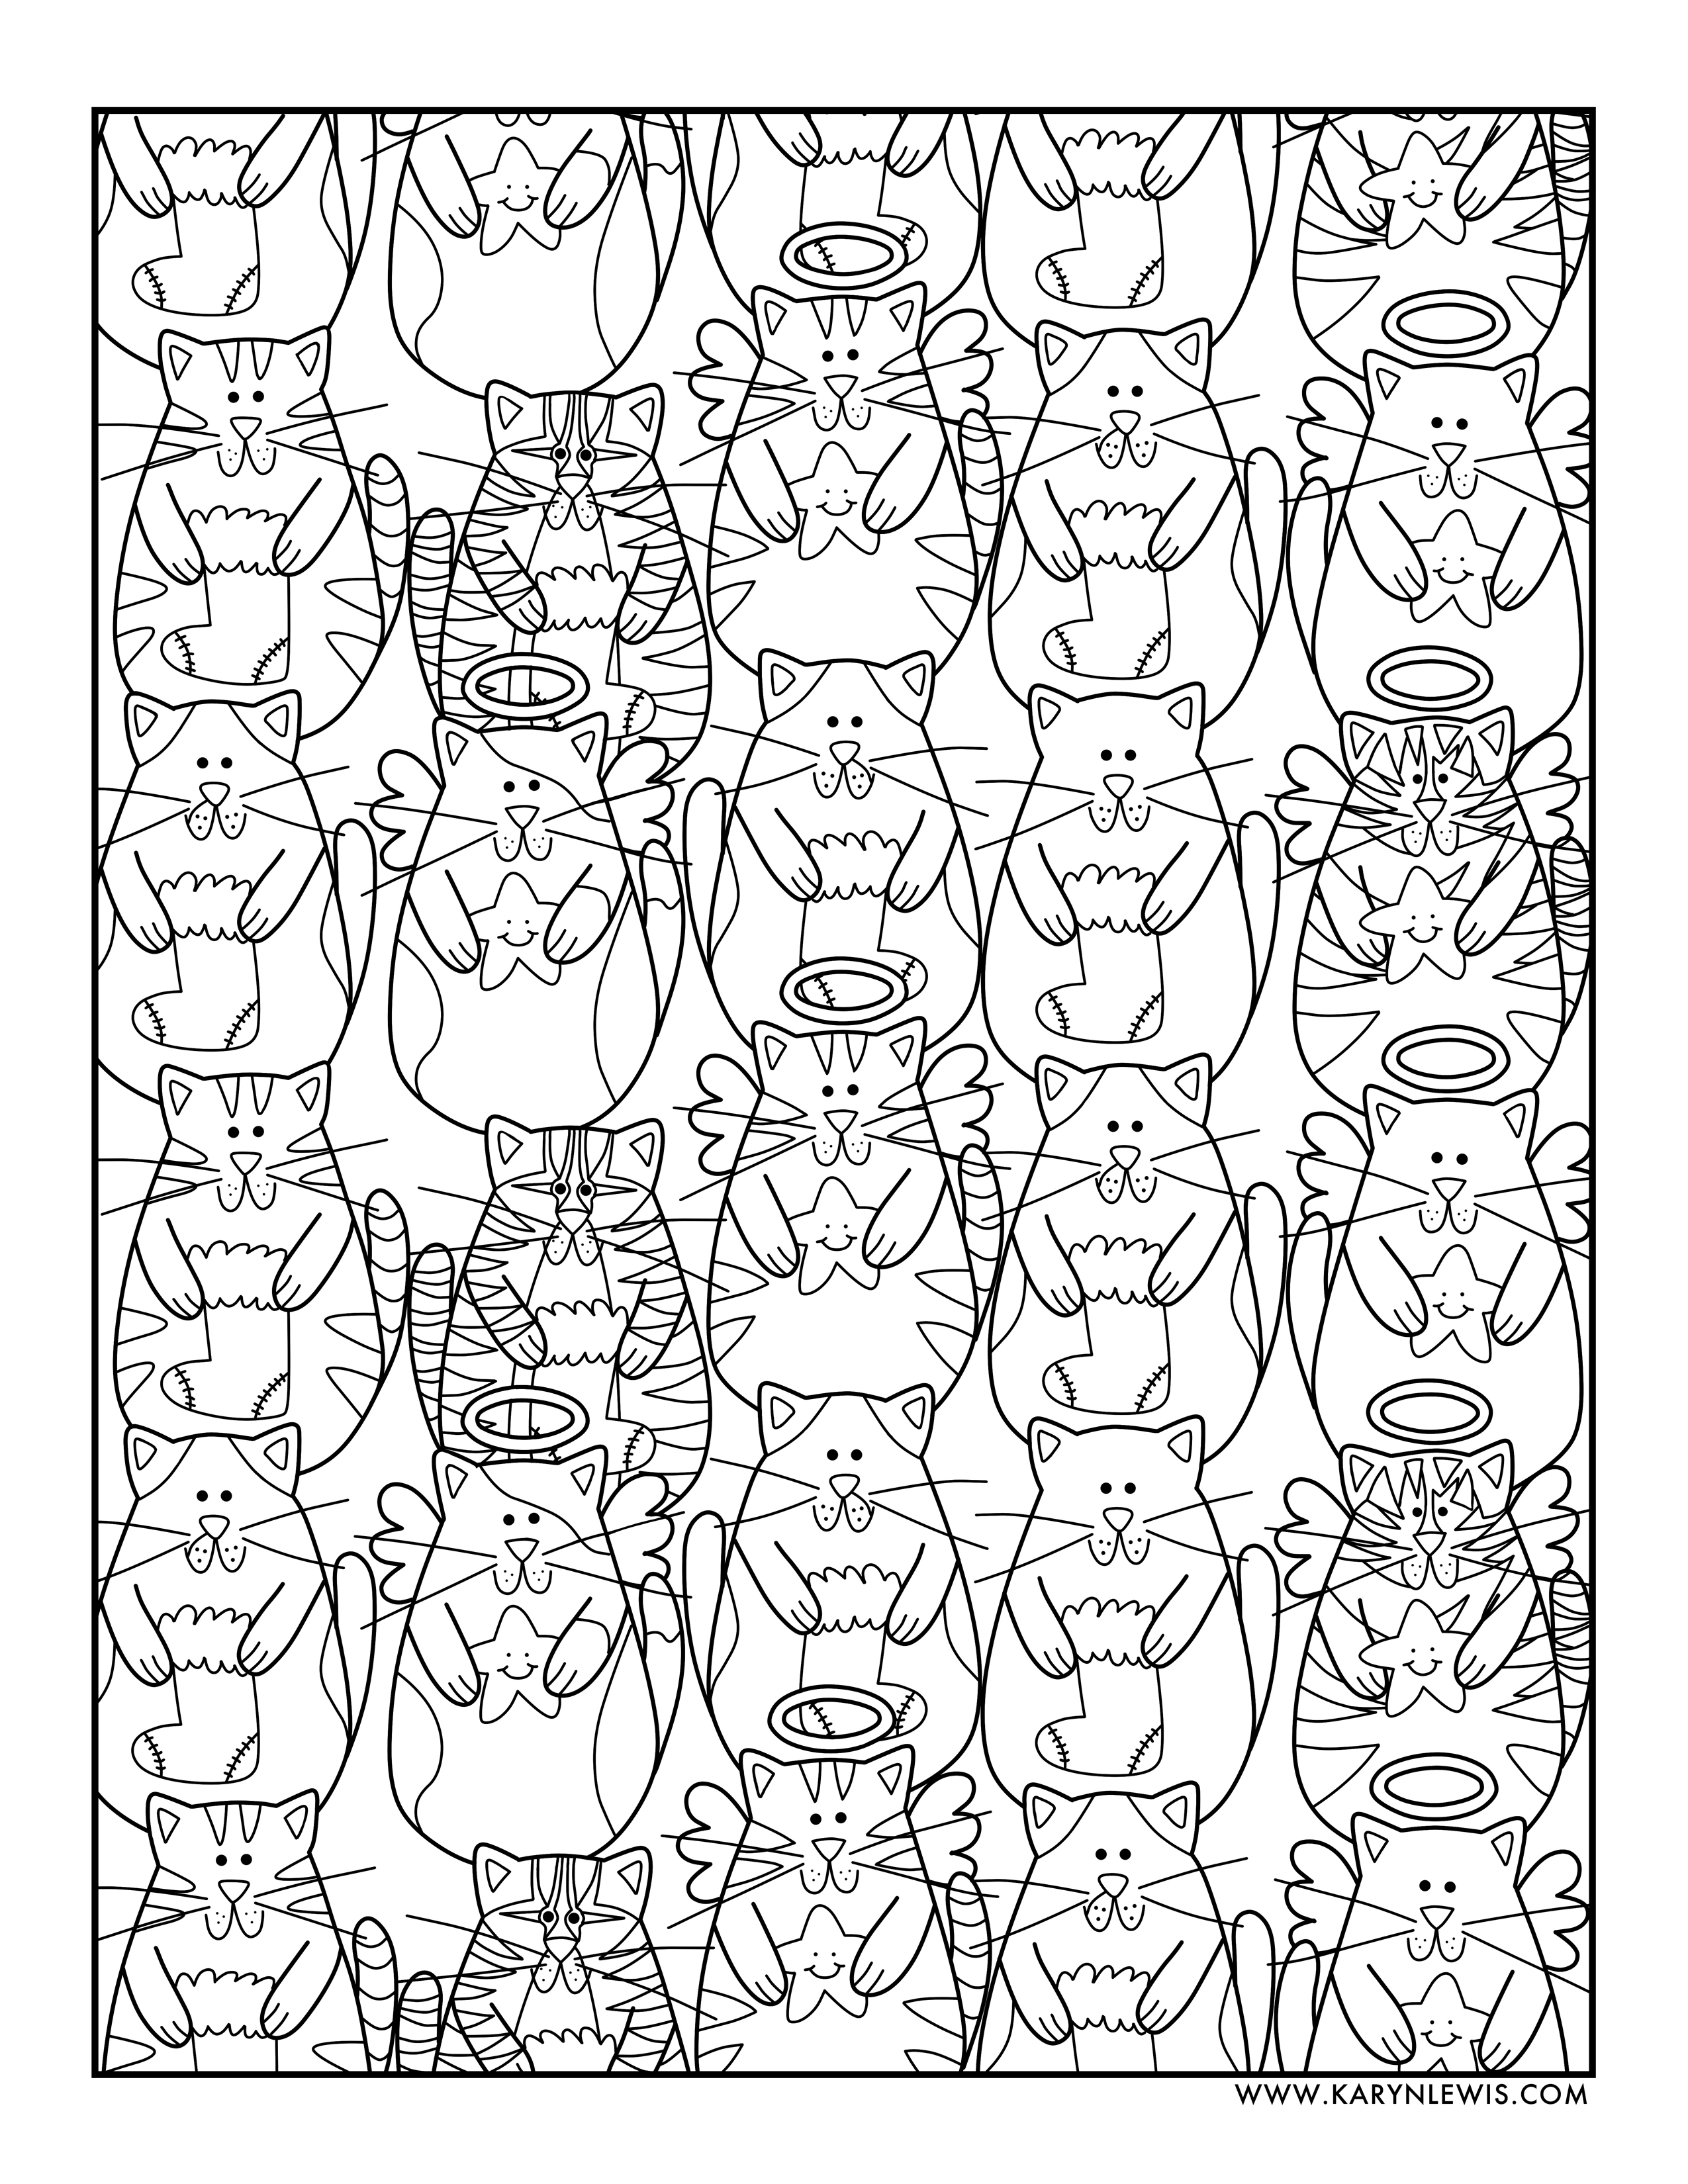 Christmas Cats Free Adult Coloring Page Karyn Lewis Illustration